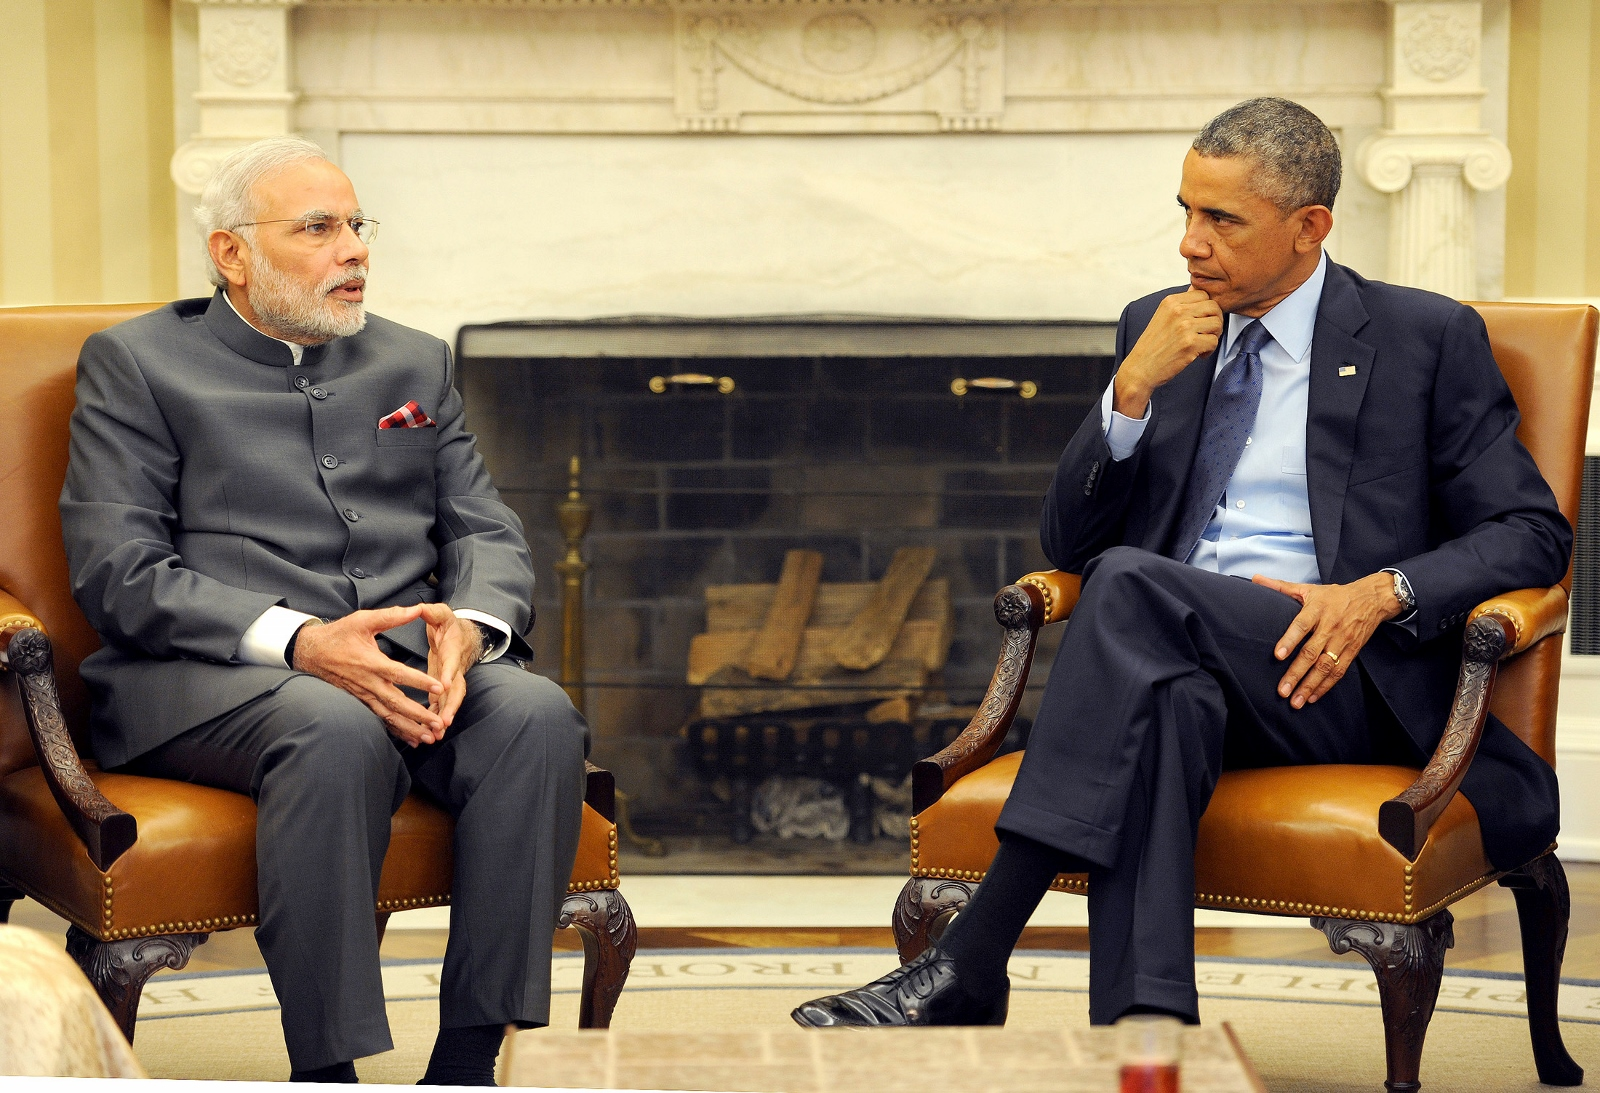 Along with U.S., India recently won the support of Mexico and Switzerland for its bid to become a member of the Nuclear Suppliers Group